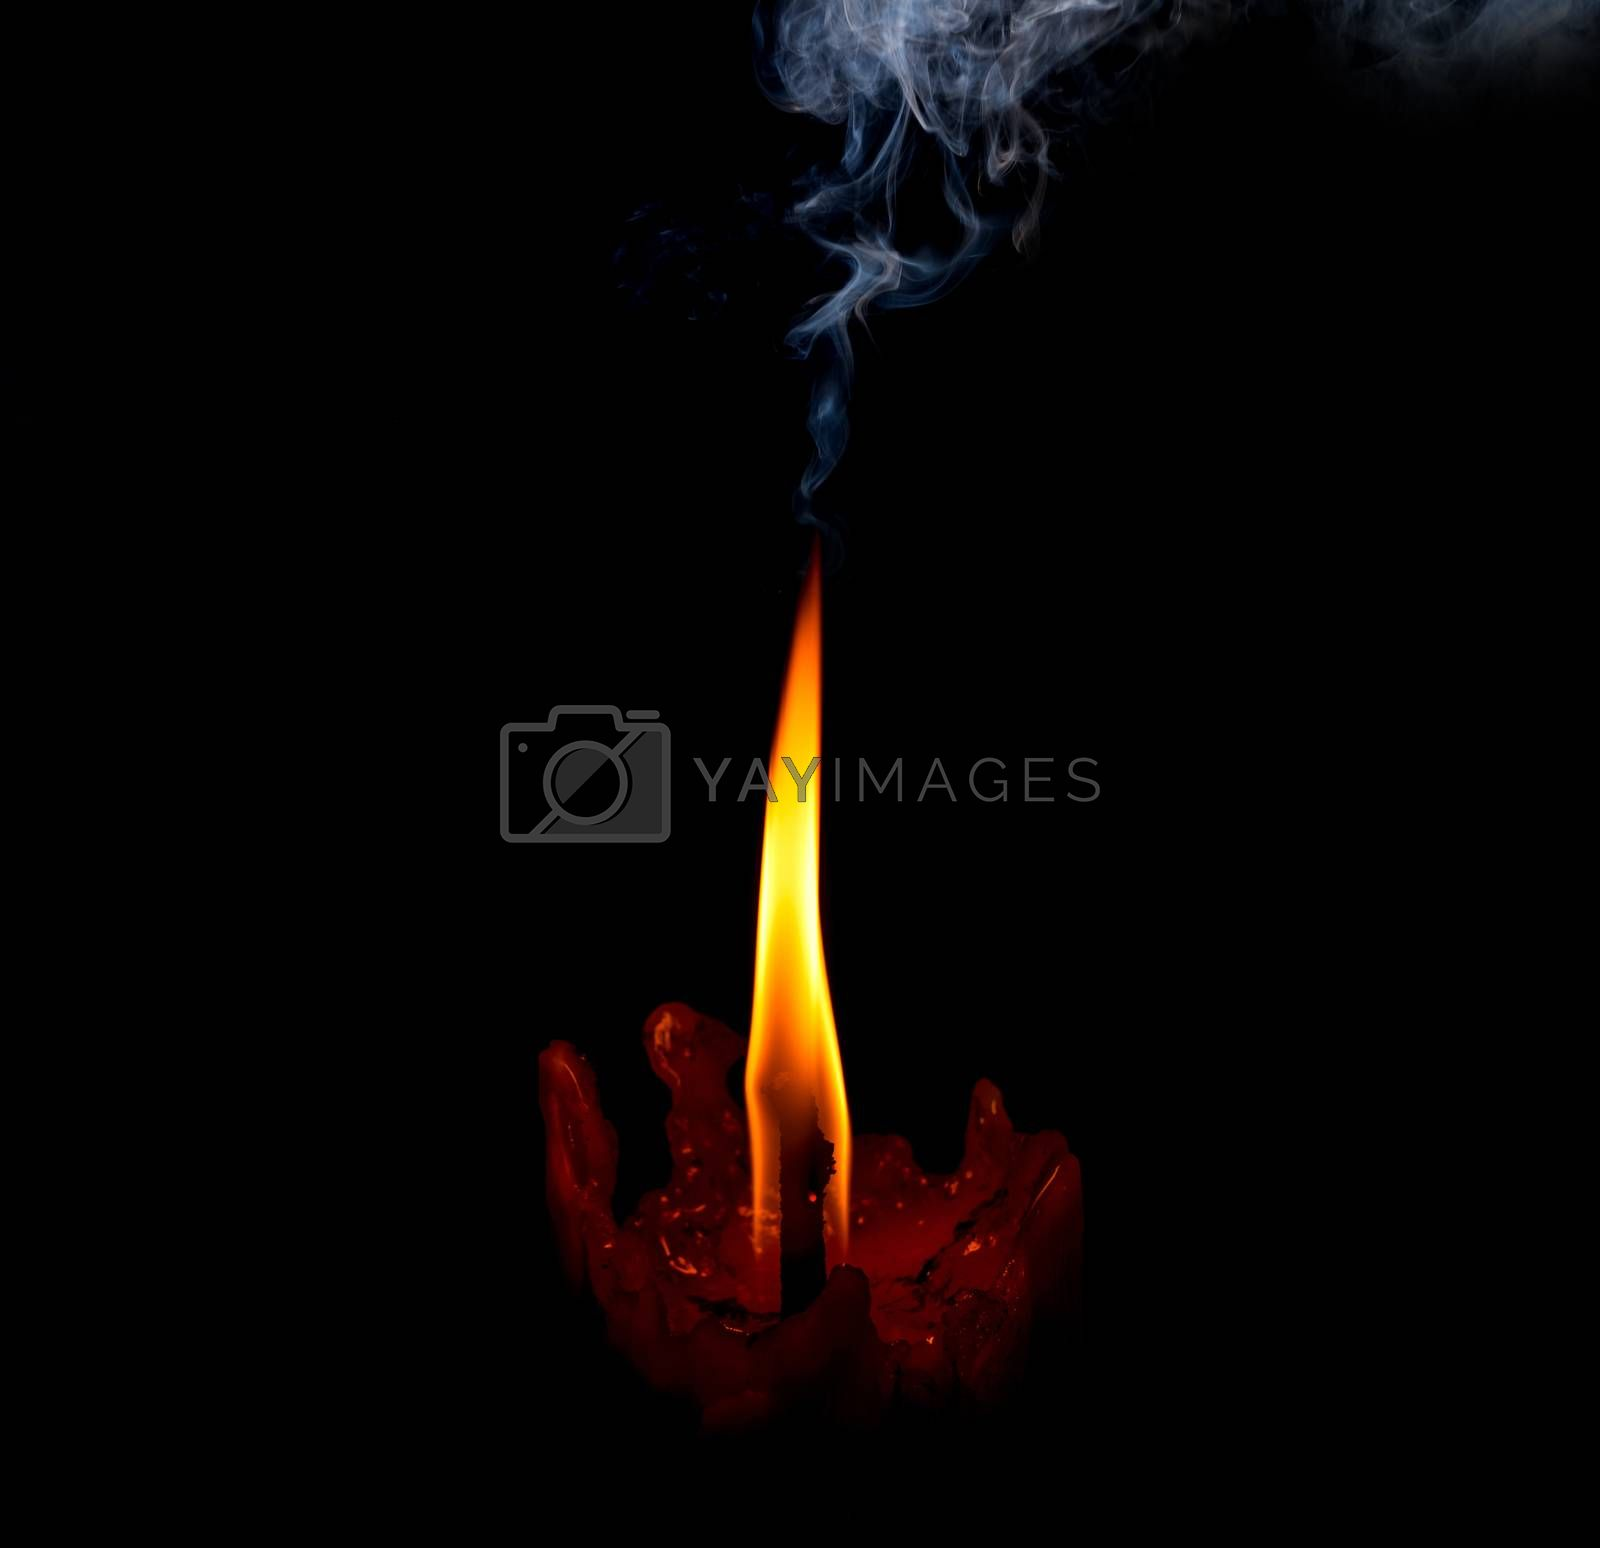 light flame candle burning brightly on black background by Chicha